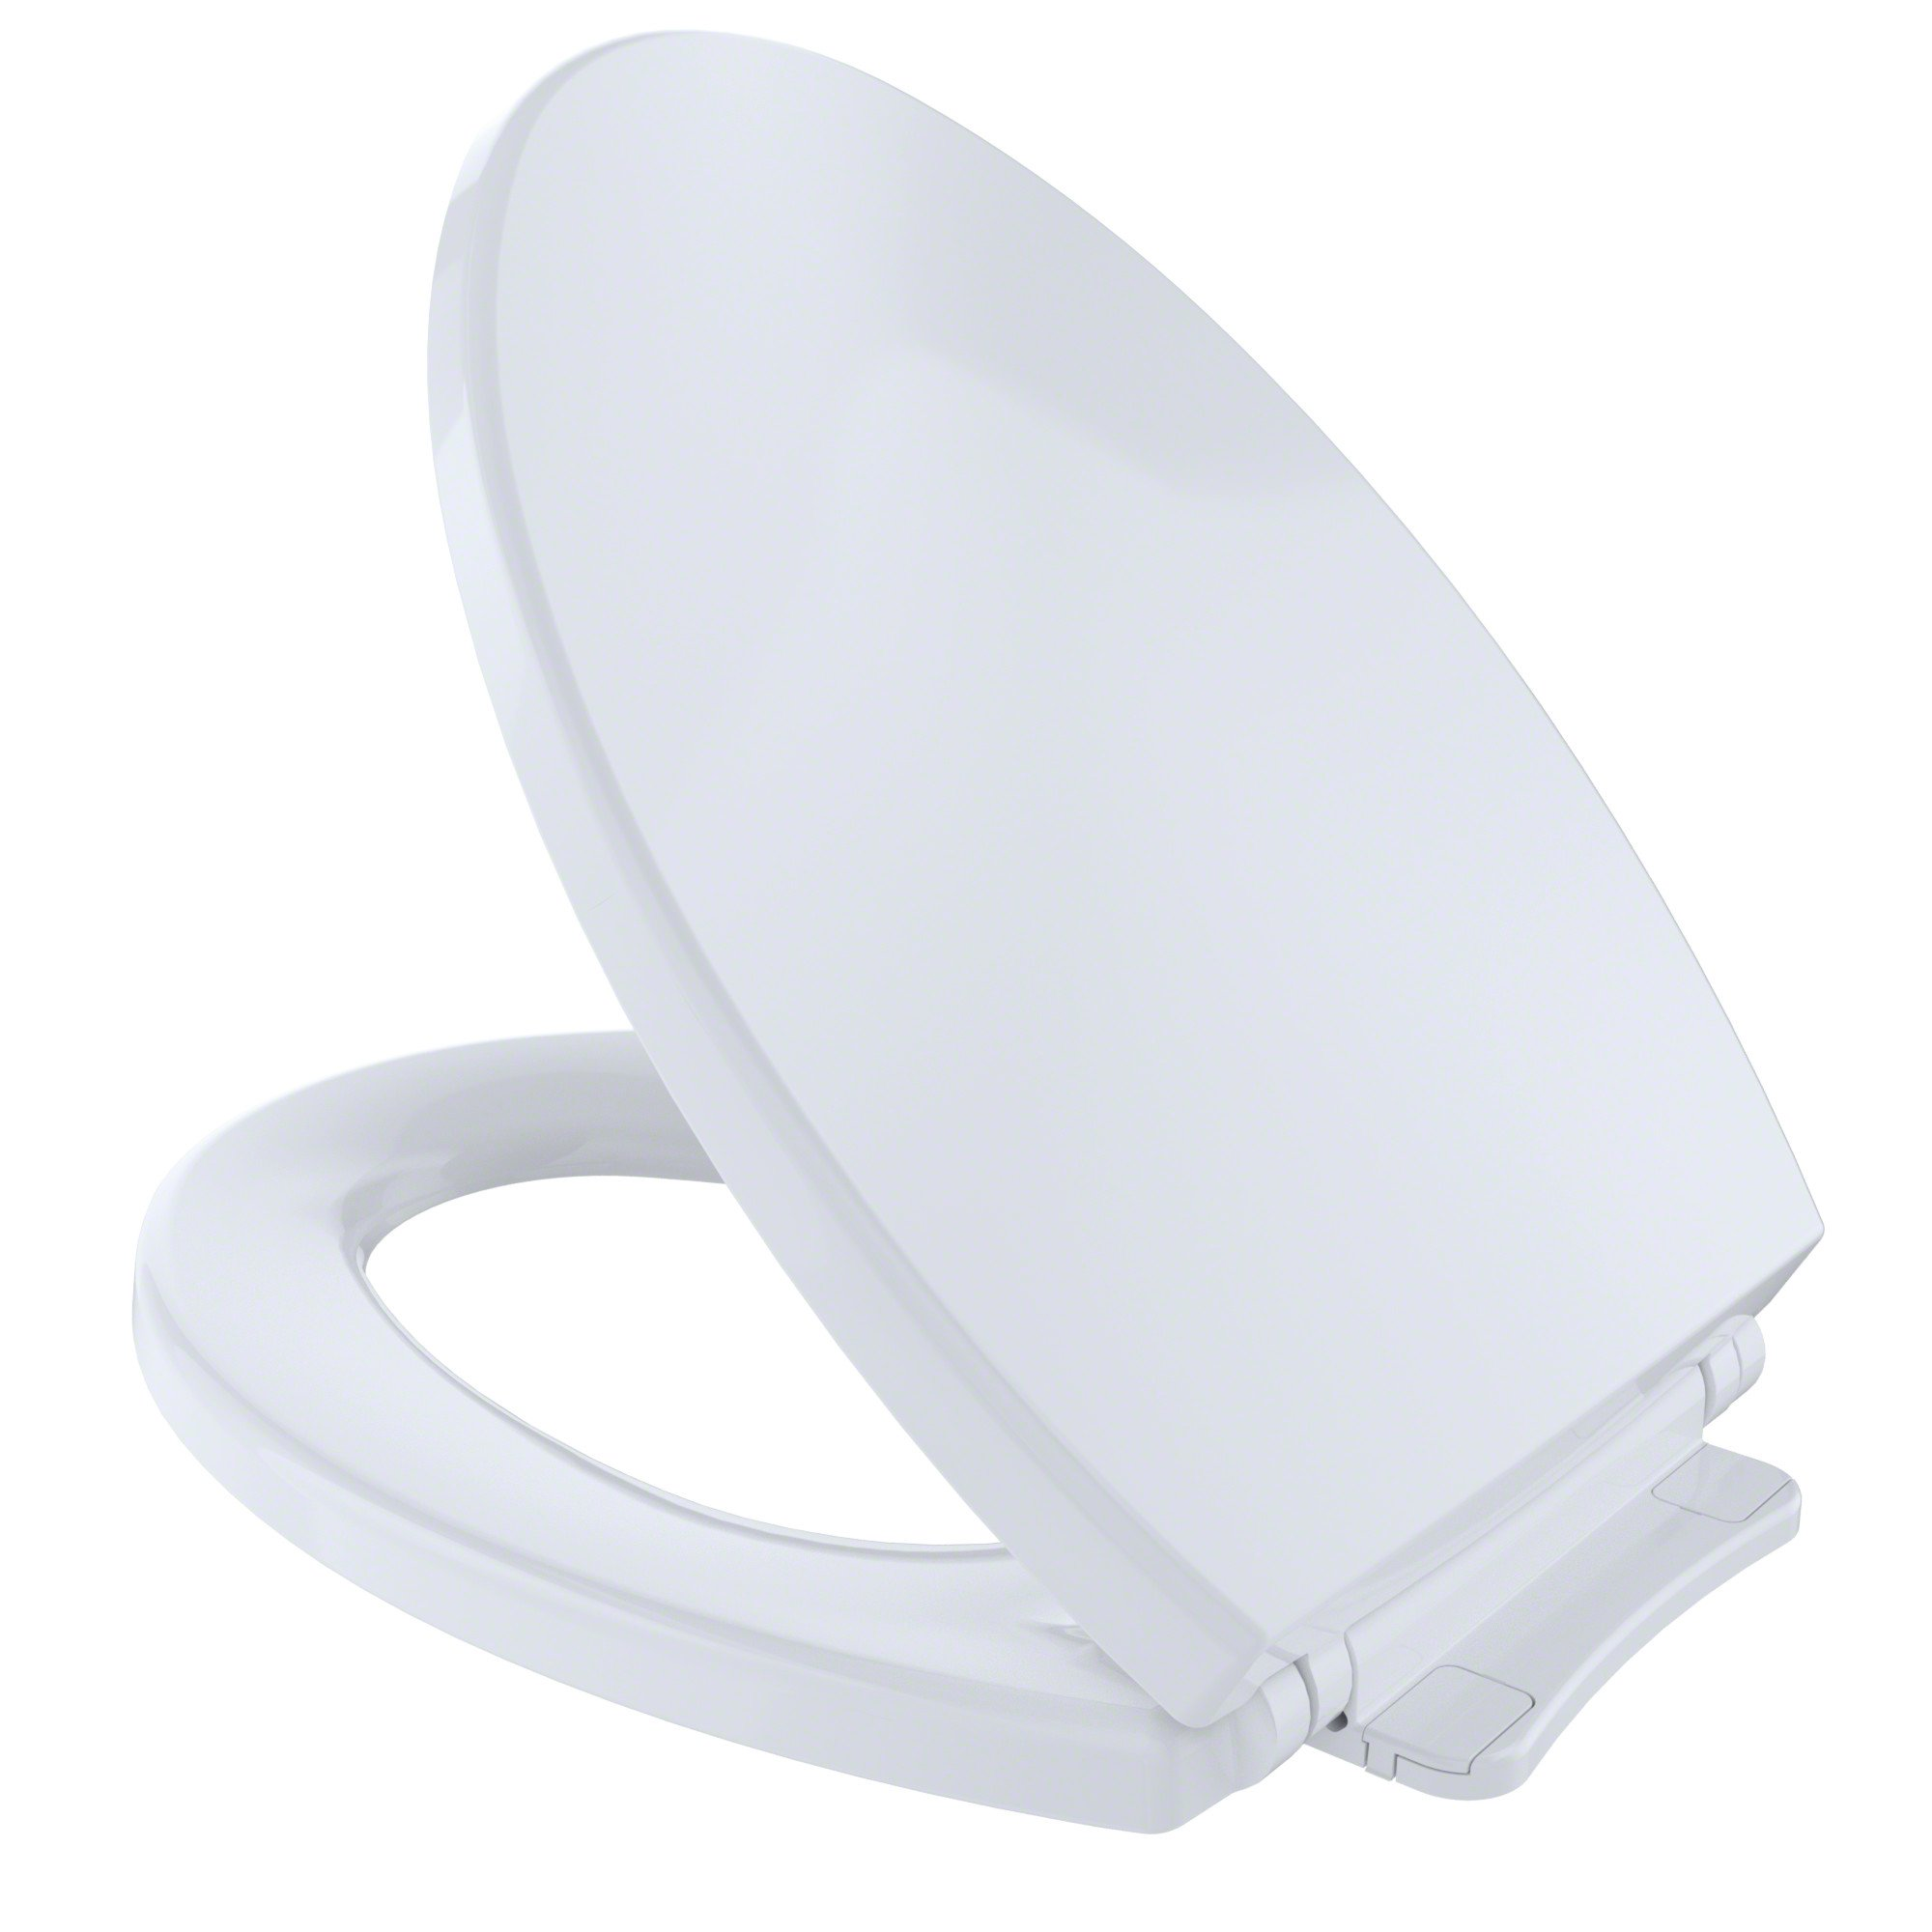 Toto SS114 01 SoftClose Elongated Toilet Seat Cover, Cotton White